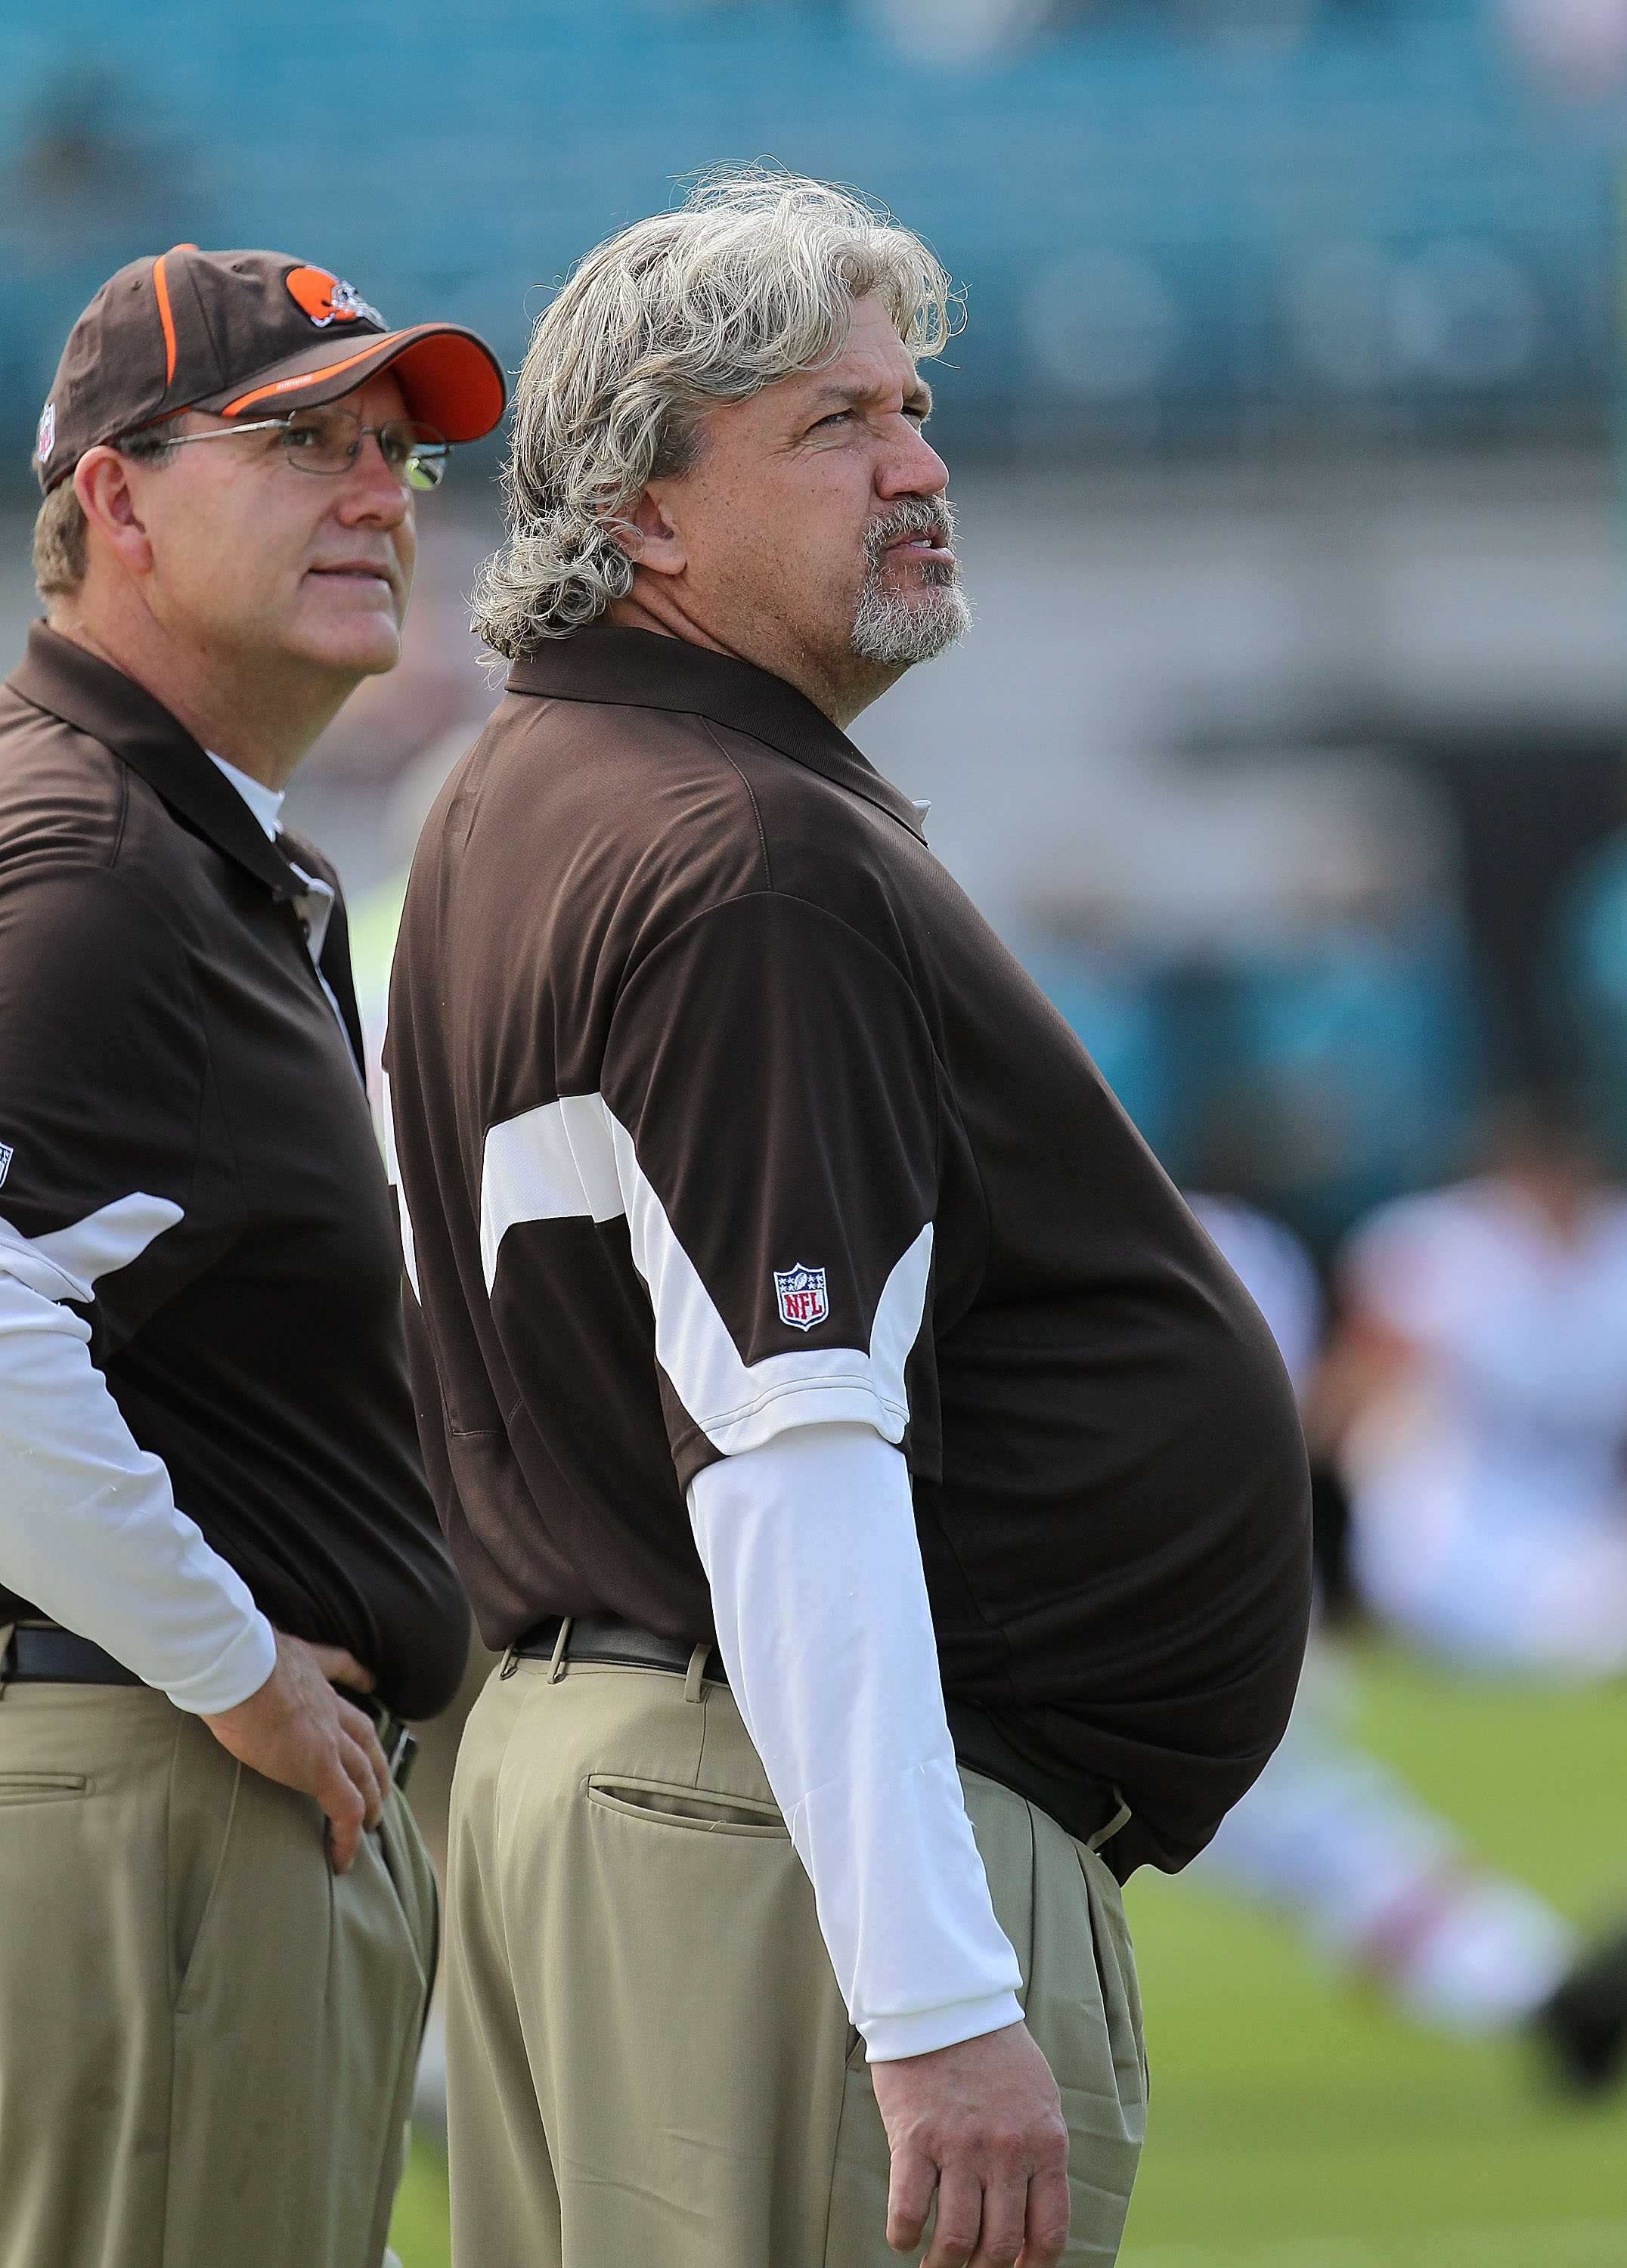 JACKSONVILLE, FL - NOVEMBER 21:  Cleveland Browns defensive coodinator Rob Ryan watches warmups during a game agaisnt the Jacksonville Jaguars at EverBank Field on November 21, 2010 in Jacksonville, Florida.  (Photo by Mike Ehrmann/Getty Images)